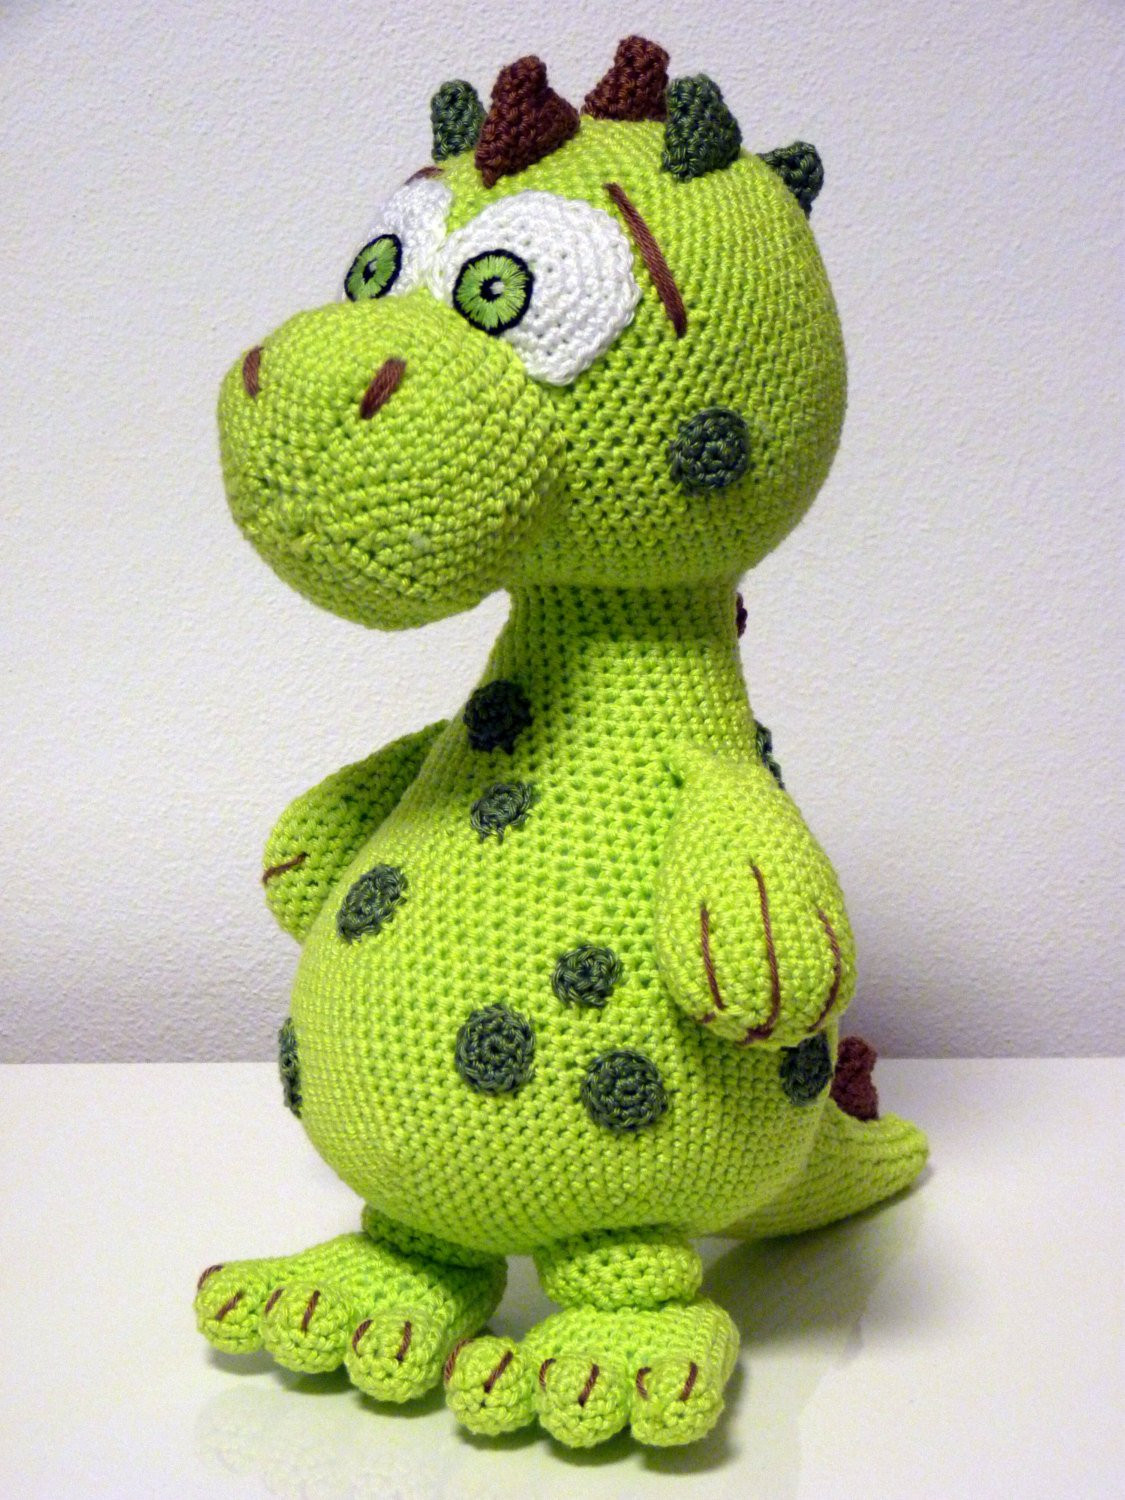 Awesome Crochet Pattern Dinosaur Lucky Amigurumi Pdf Cute Green Dino Free Dinosaur Crochet Pattern Of Wonderful 42 Pictures Free Dinosaur Crochet Pattern